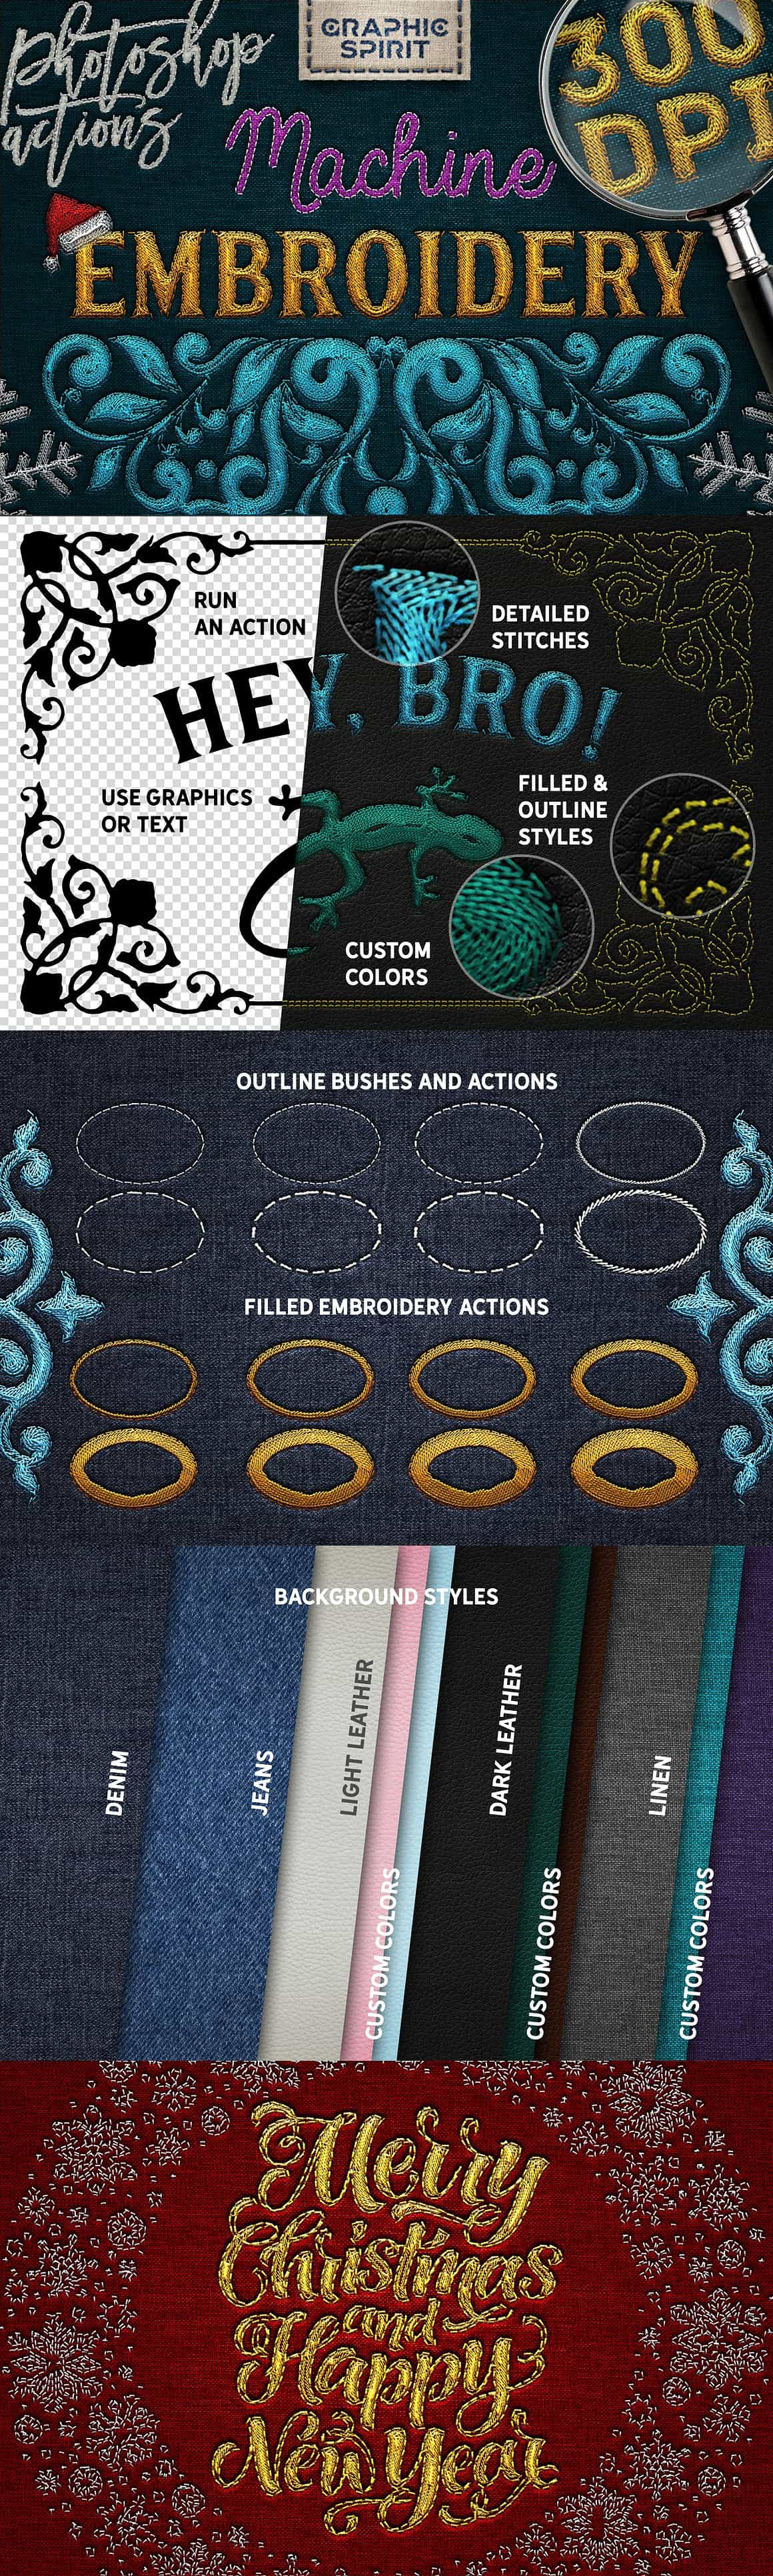 Machine Embroidery Photoshop Actions - $14 - embroidery photoshop actions0 min